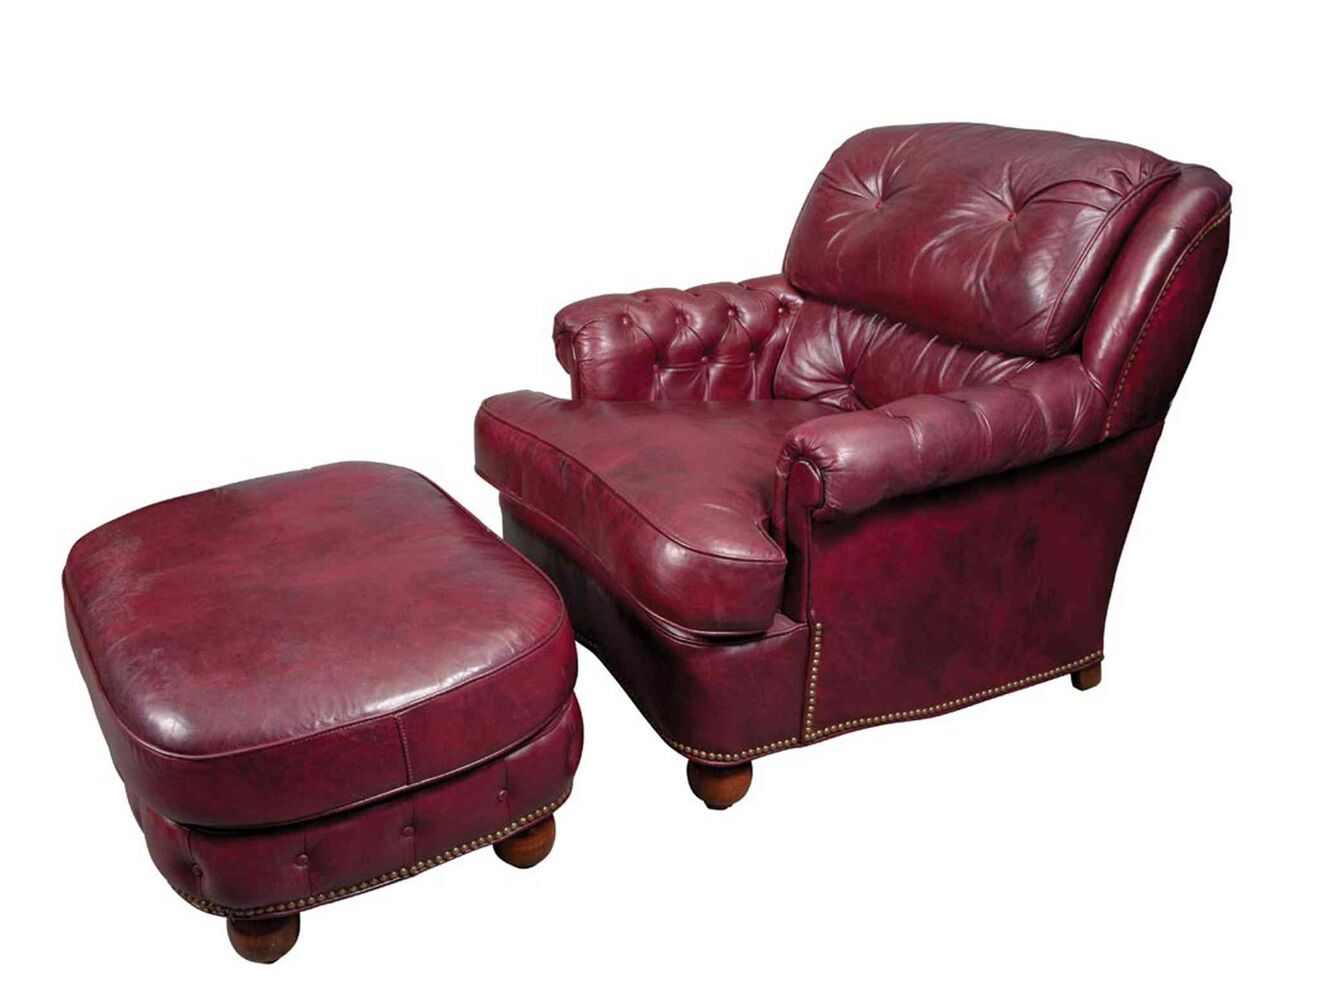 This burgundy leather club chair and ottoman, which once belonged to former New York City mayor Ed Koch, looks very comfortable and would be a wonderful place in which someone such as Ron Burgundy could relax after looking through this exciting slide show.